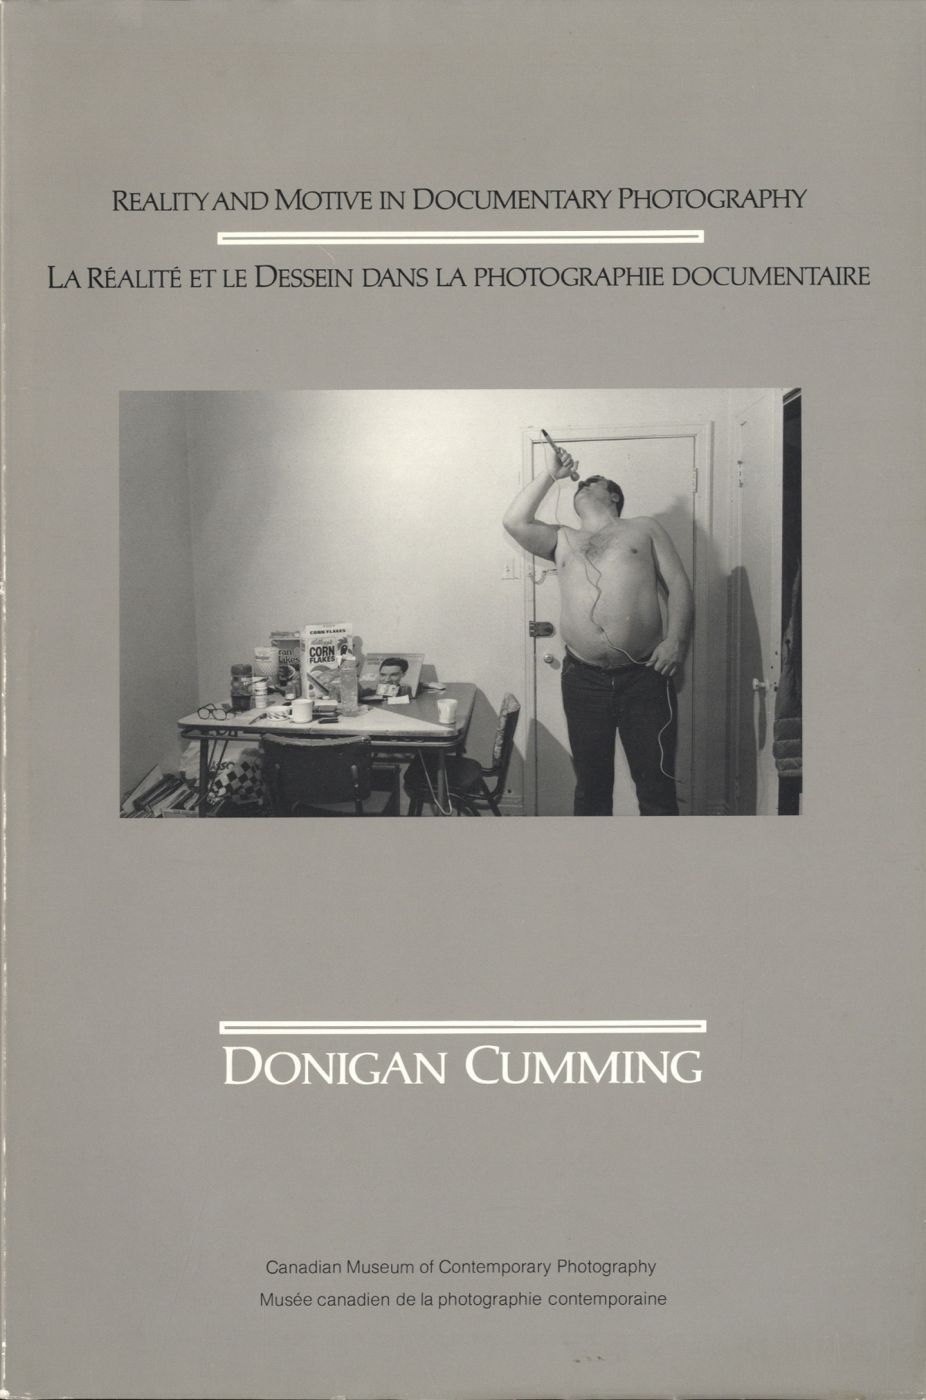 Donigan Cumming: Reality and Motive in Documentary Photography / La Réalité et le Dessein dans la photographie documentaire